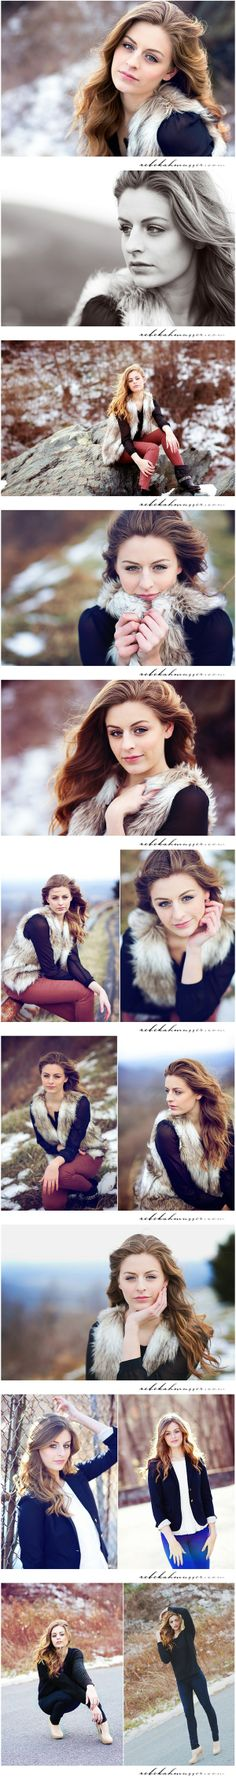 Winter senior picture ideas for girls. Winter senior pictures. Senior pictures girls winter. Winter senior photography. #winterseniorpictureideas #winterseniorpictures #seniorpictureideasforgirls